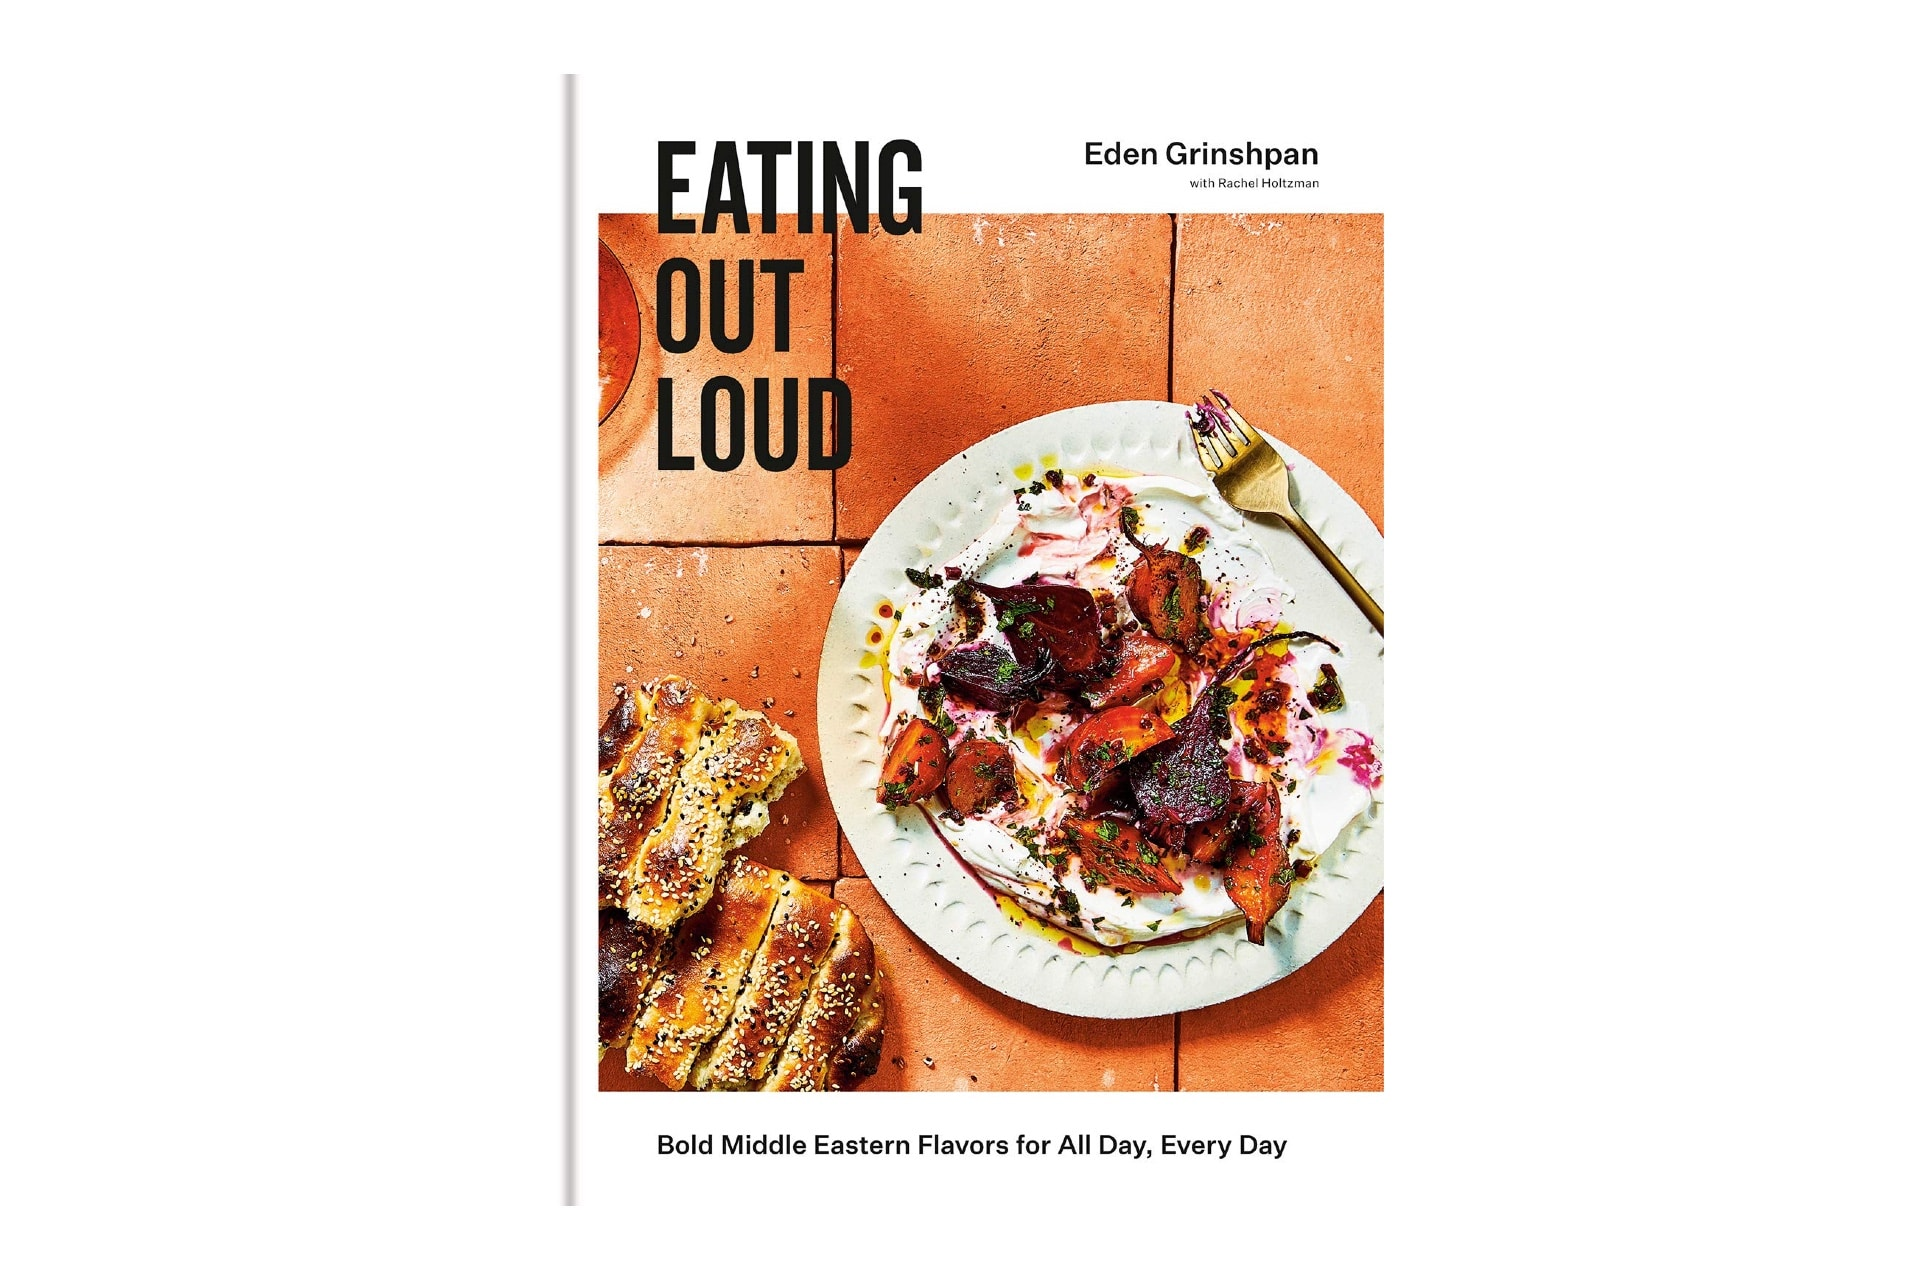 Eden Grinshpan cookbook called Eating Out Loud with a whipped dip and flatbread on the colourful cover